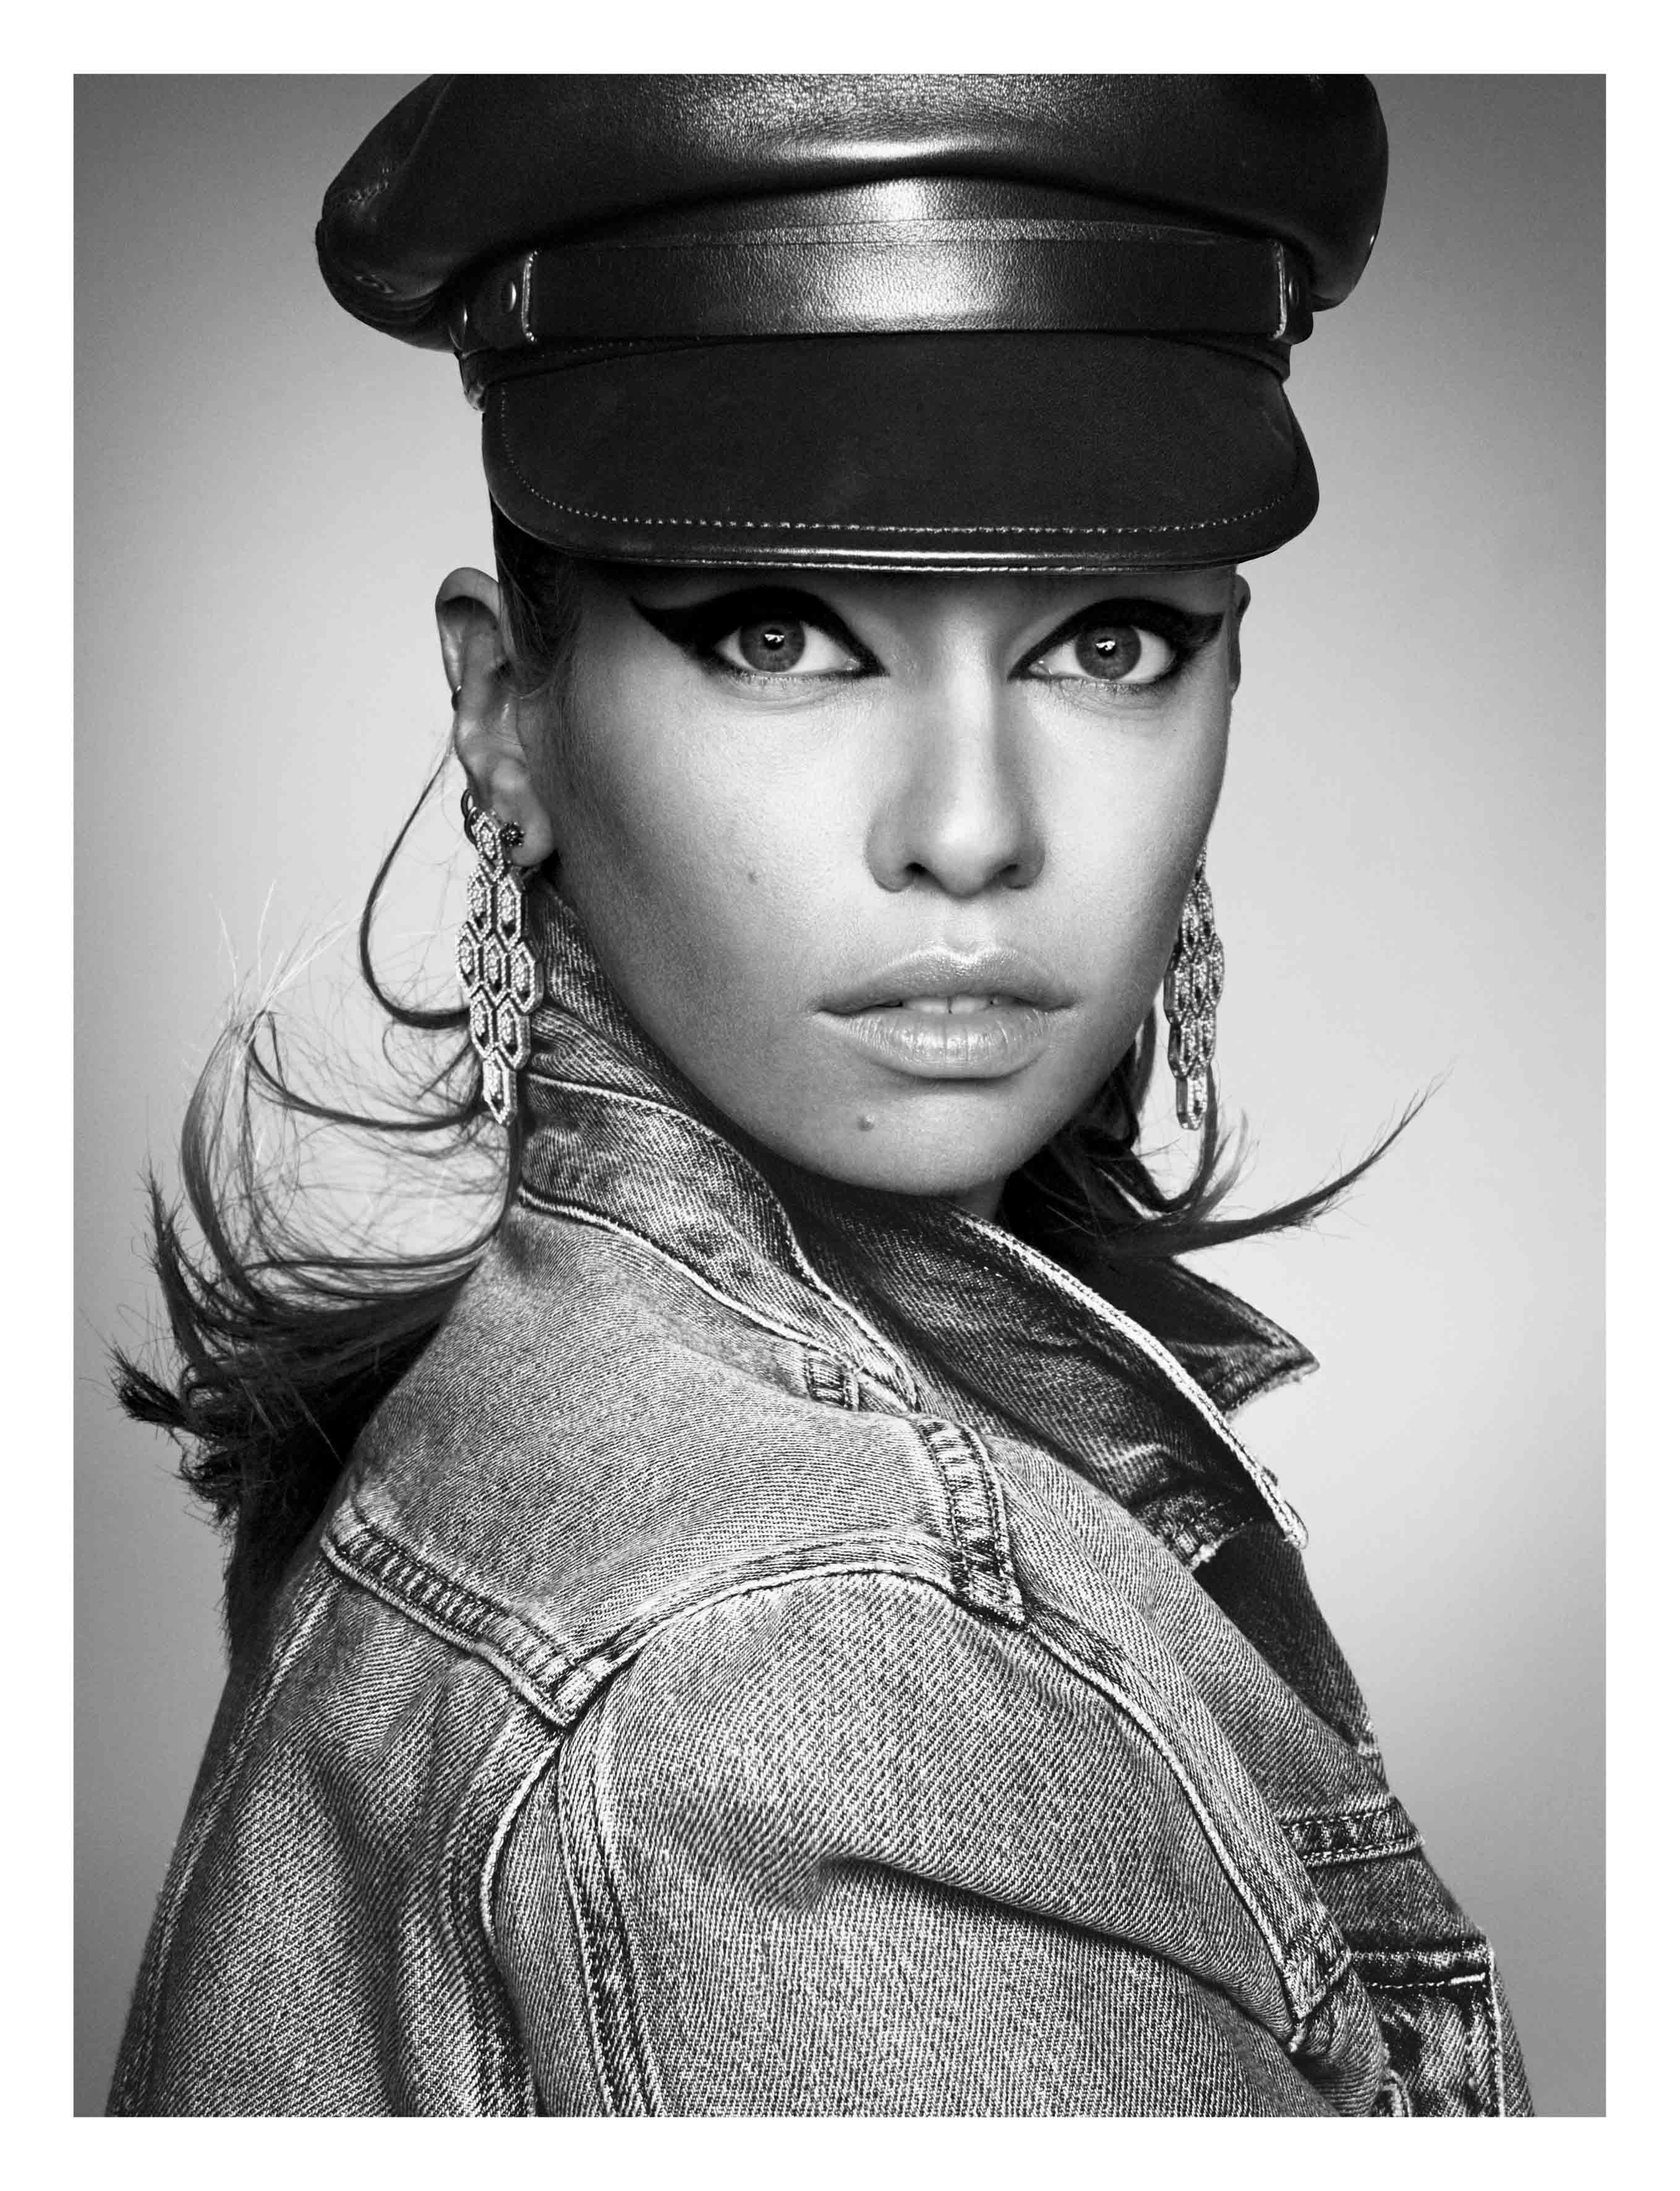 "Veste en denim, GUESS. Casquette, DSQUARED2. Boucles d'oreilles ""Serpenti"" en or blanc et diamants, BULGARI."